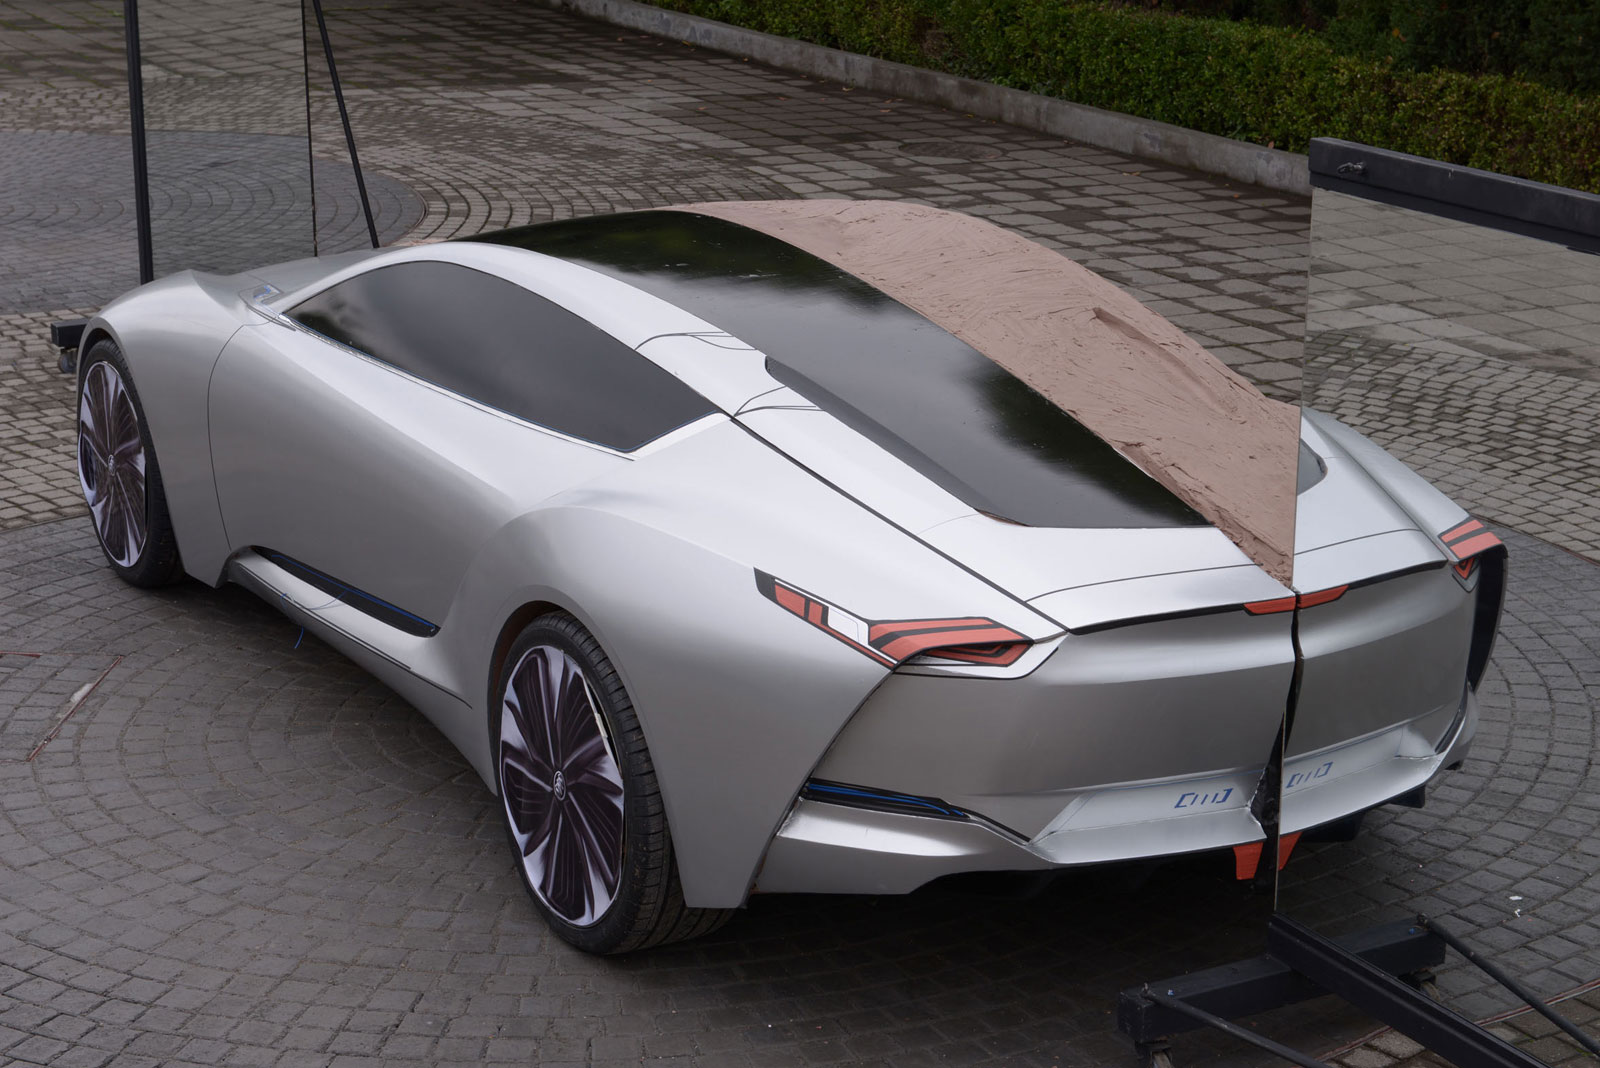 Buick Riviera Concept Clay Early Stage Car Body Design